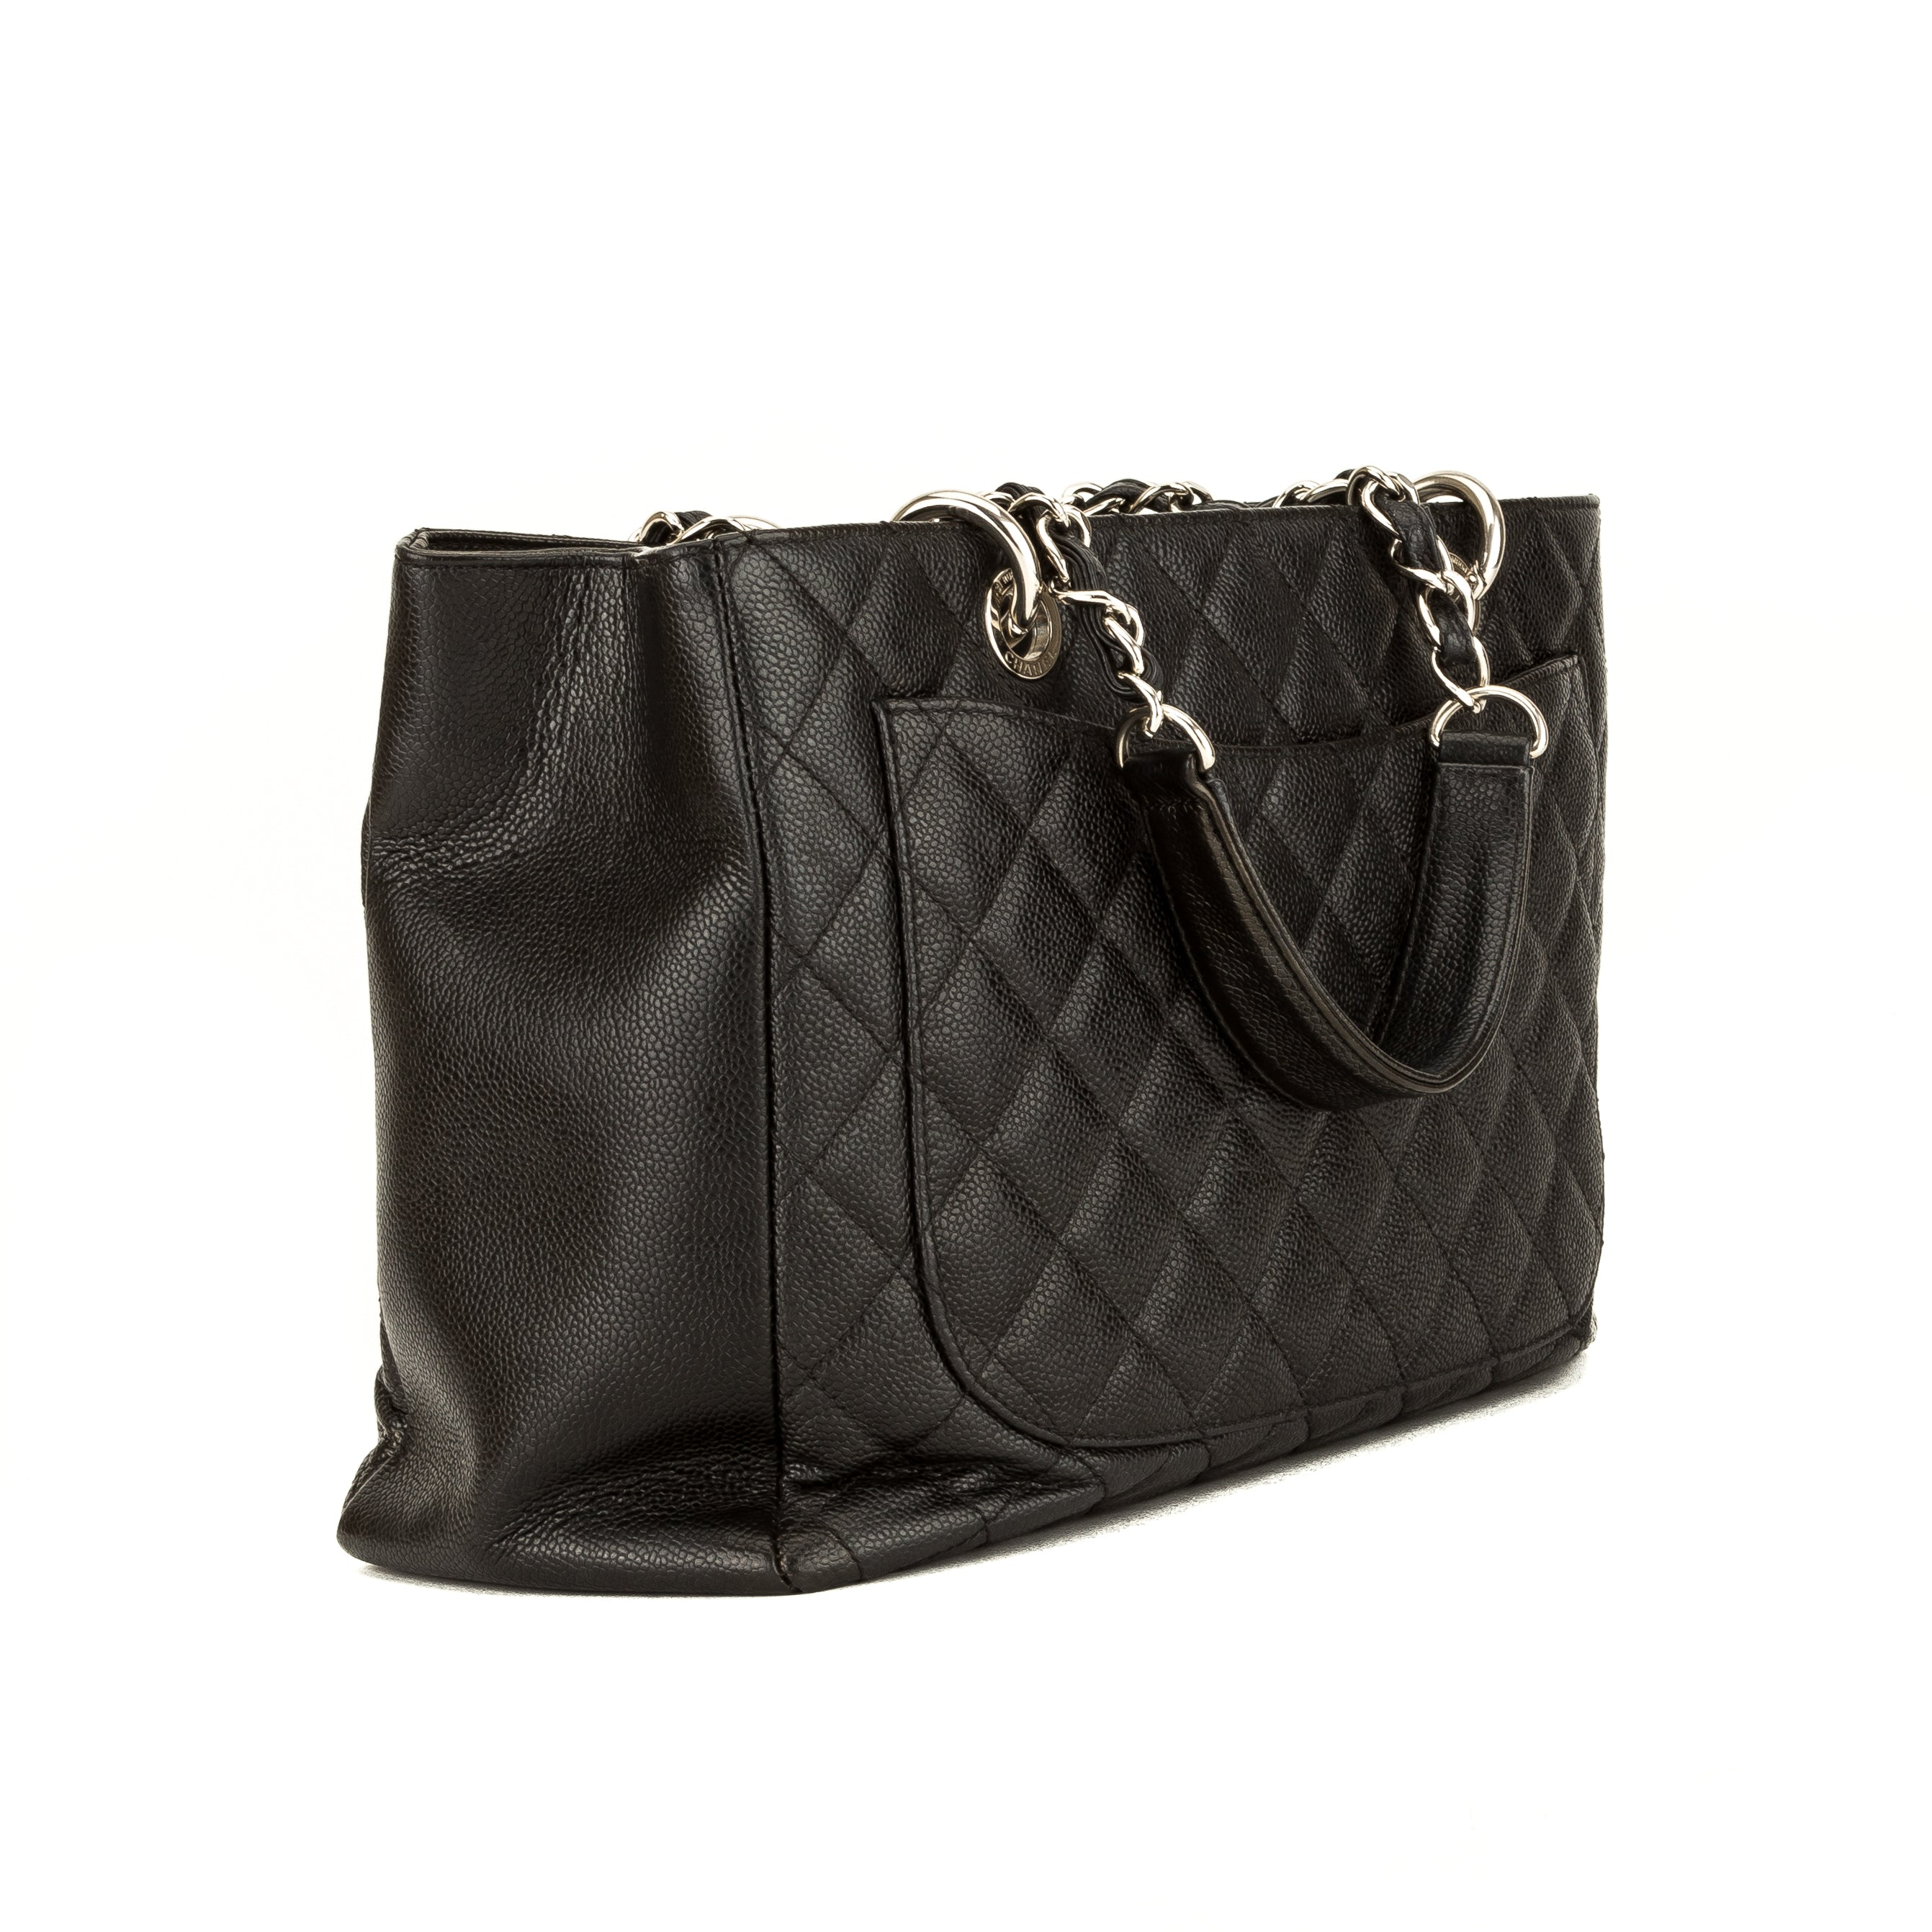 026869092ab2 Chanel Black Quilted Caviar Grand Shopping Tote GST (3974006 ...